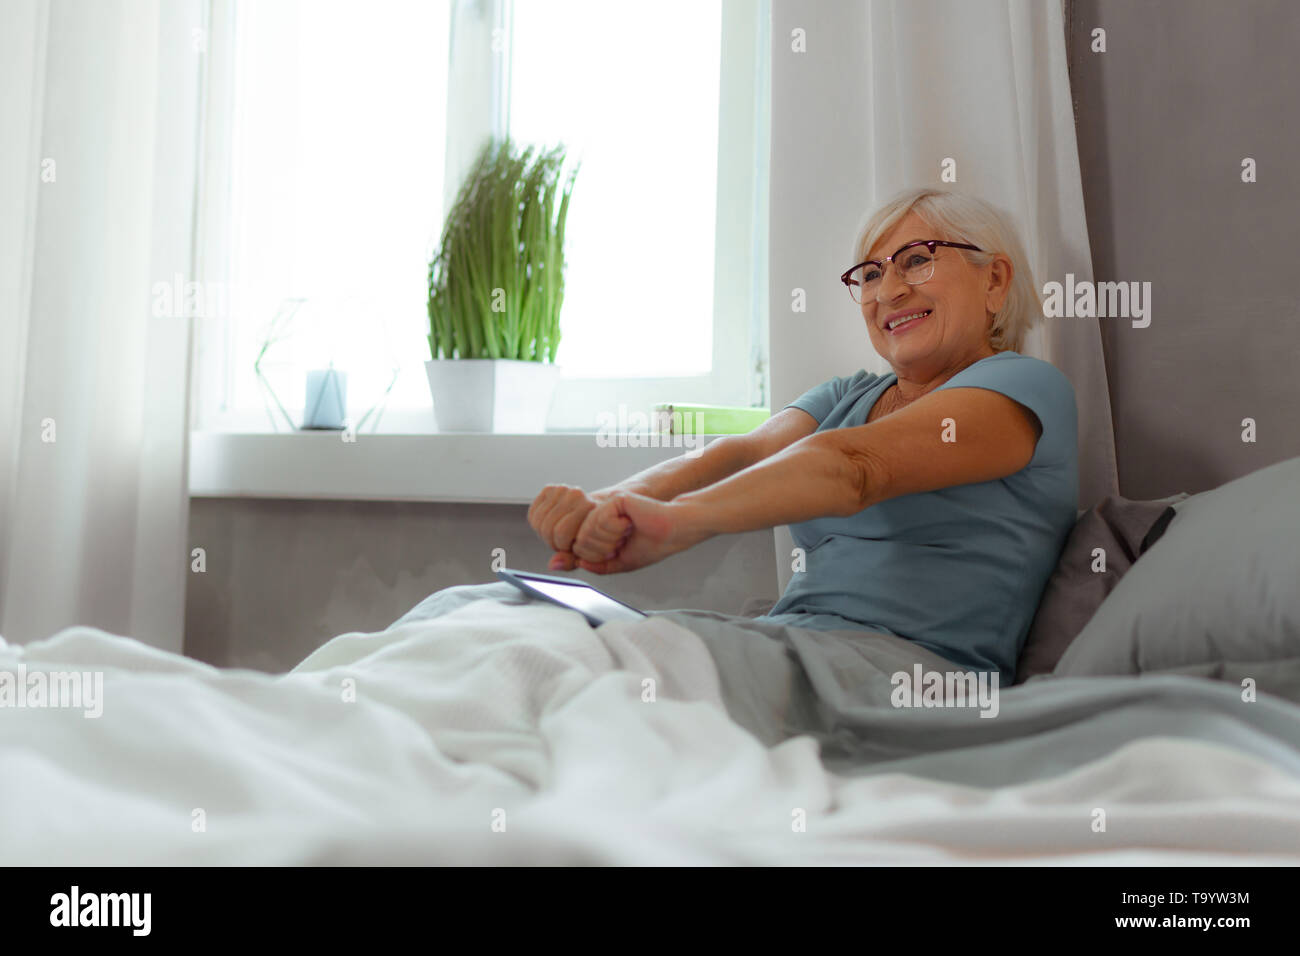 Active elderly female stretching her arms after sleeping - Stock Image